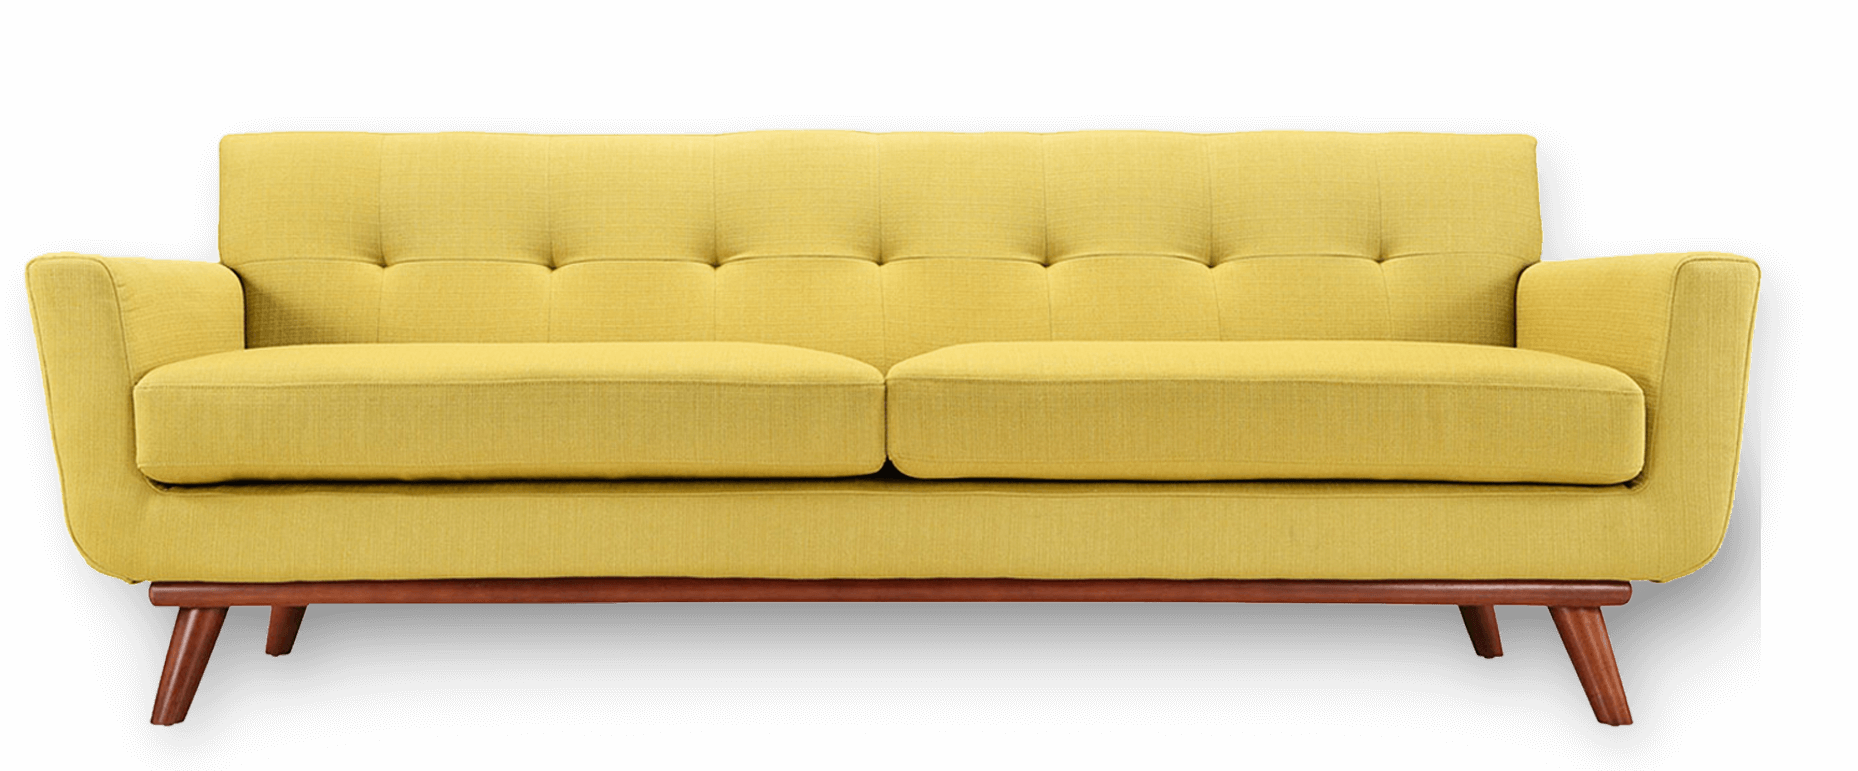 Couch transparent png. Yellow sofa mart